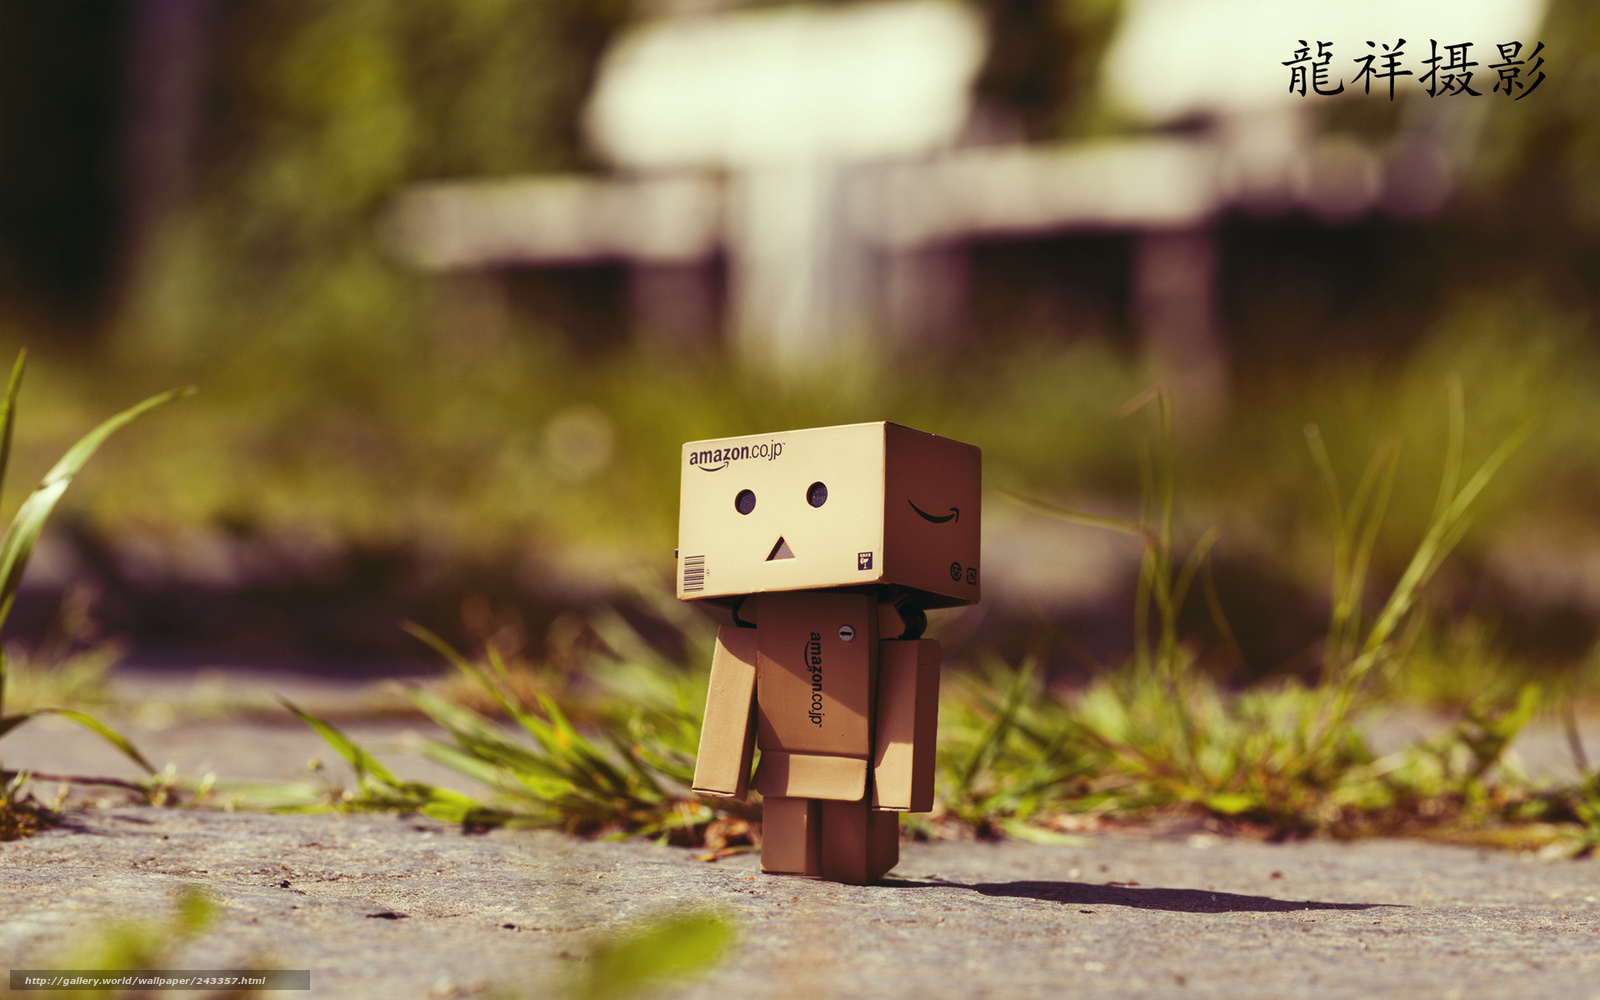 cardboard robot wallpaper hd - photo #3